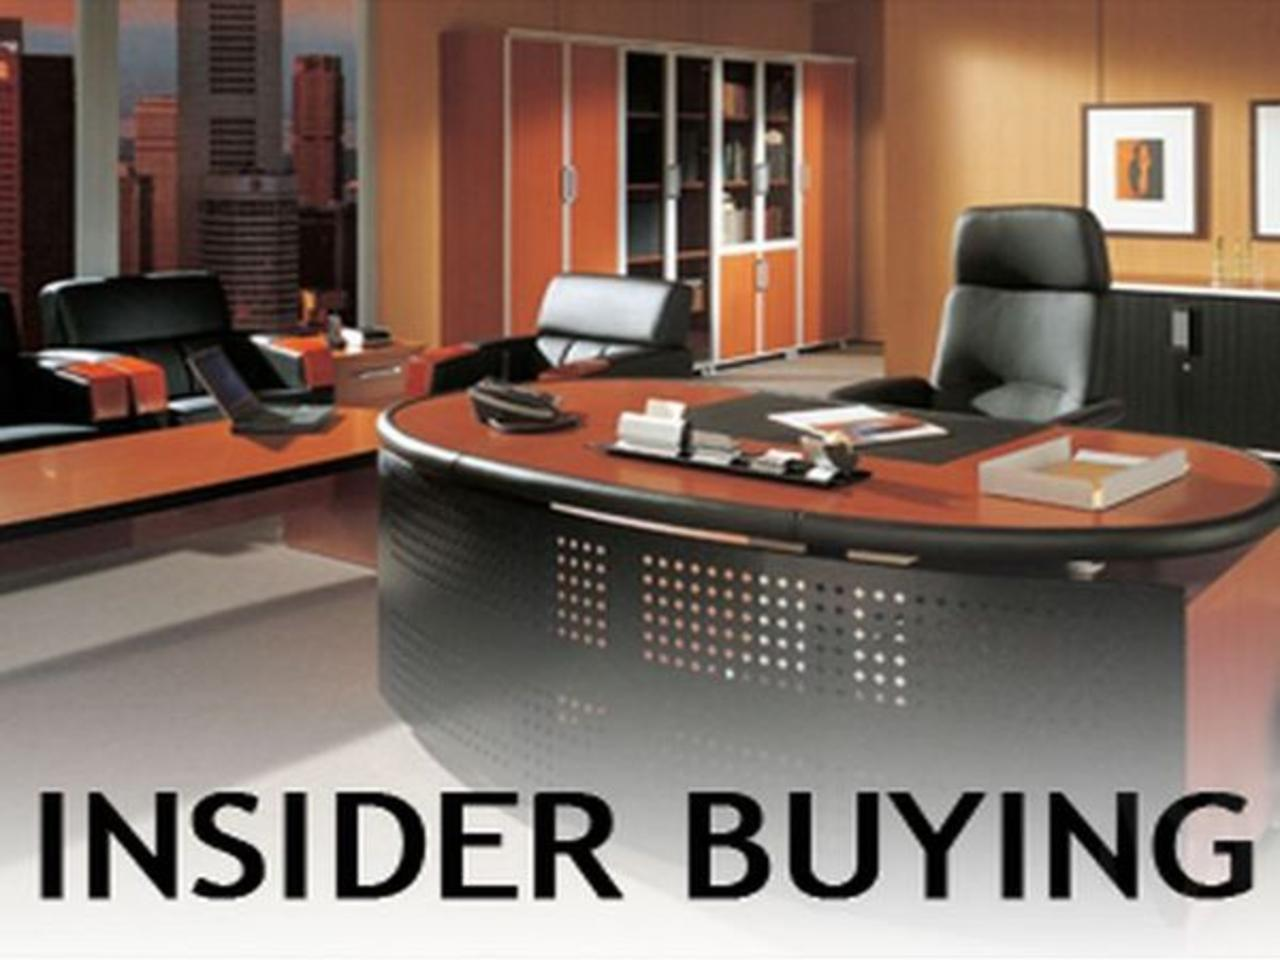 Friday 4/9 Insider Buying Report: ASTS, CZNC